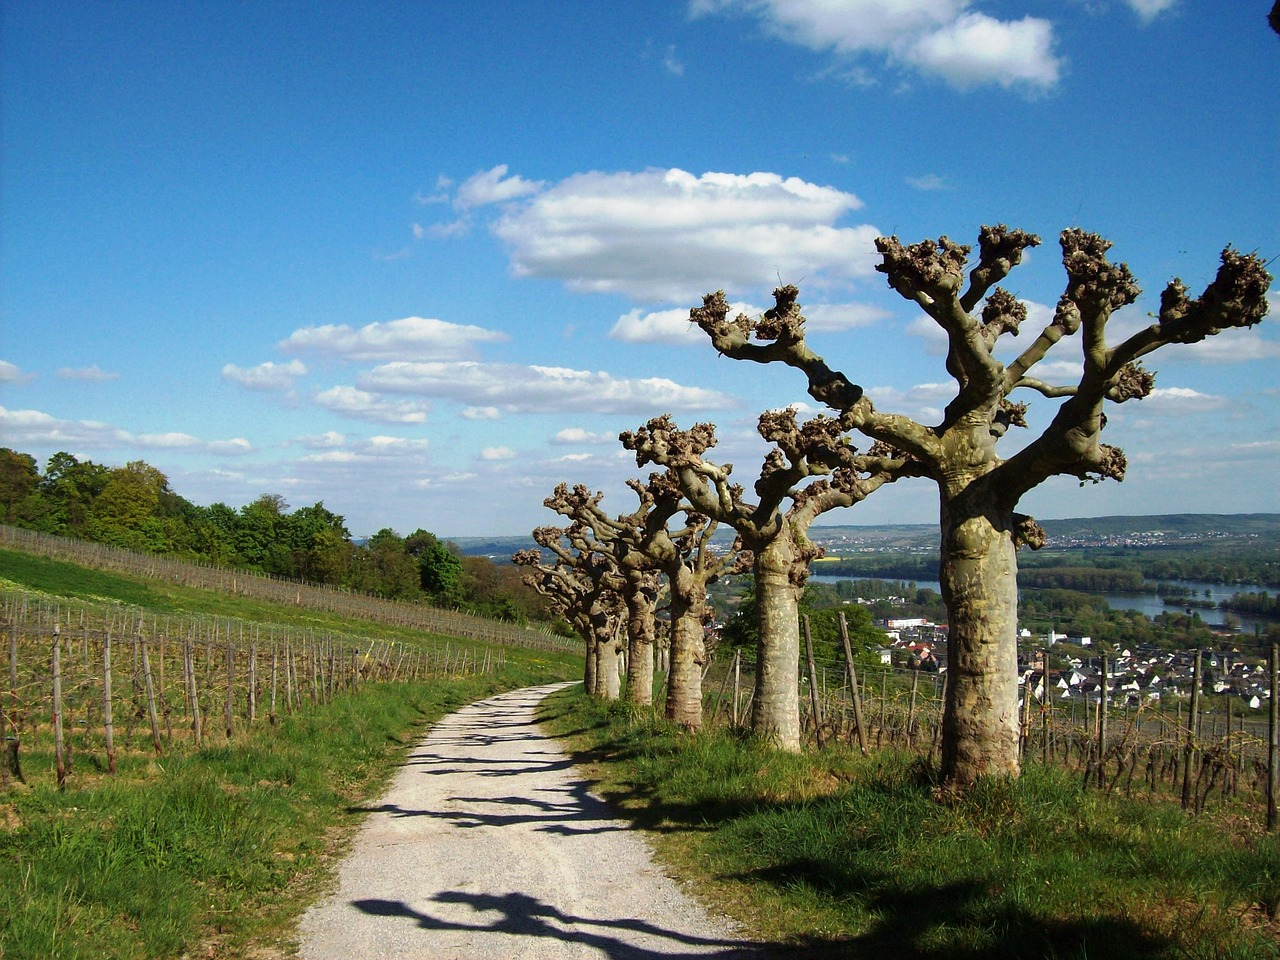 rüdesheim am rhein plane trees vineyards free photo